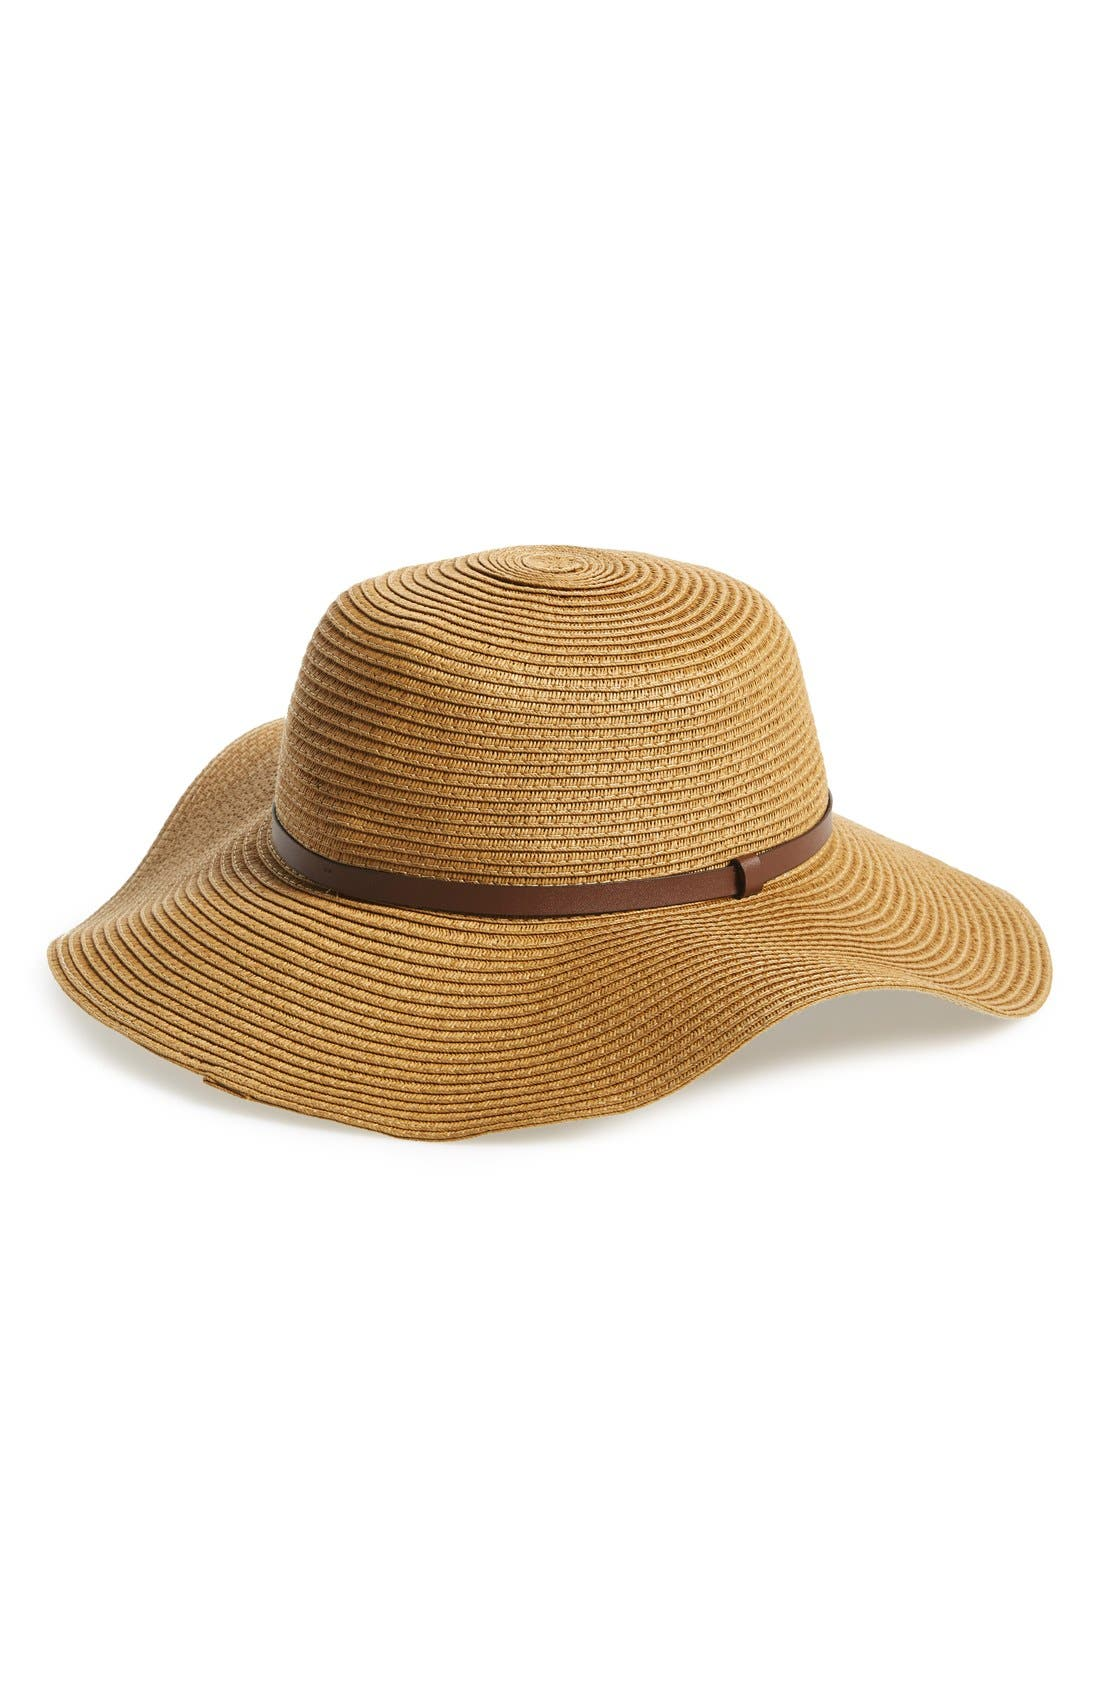 Main Image - Nordstrom Braided Straw Floppy Hat